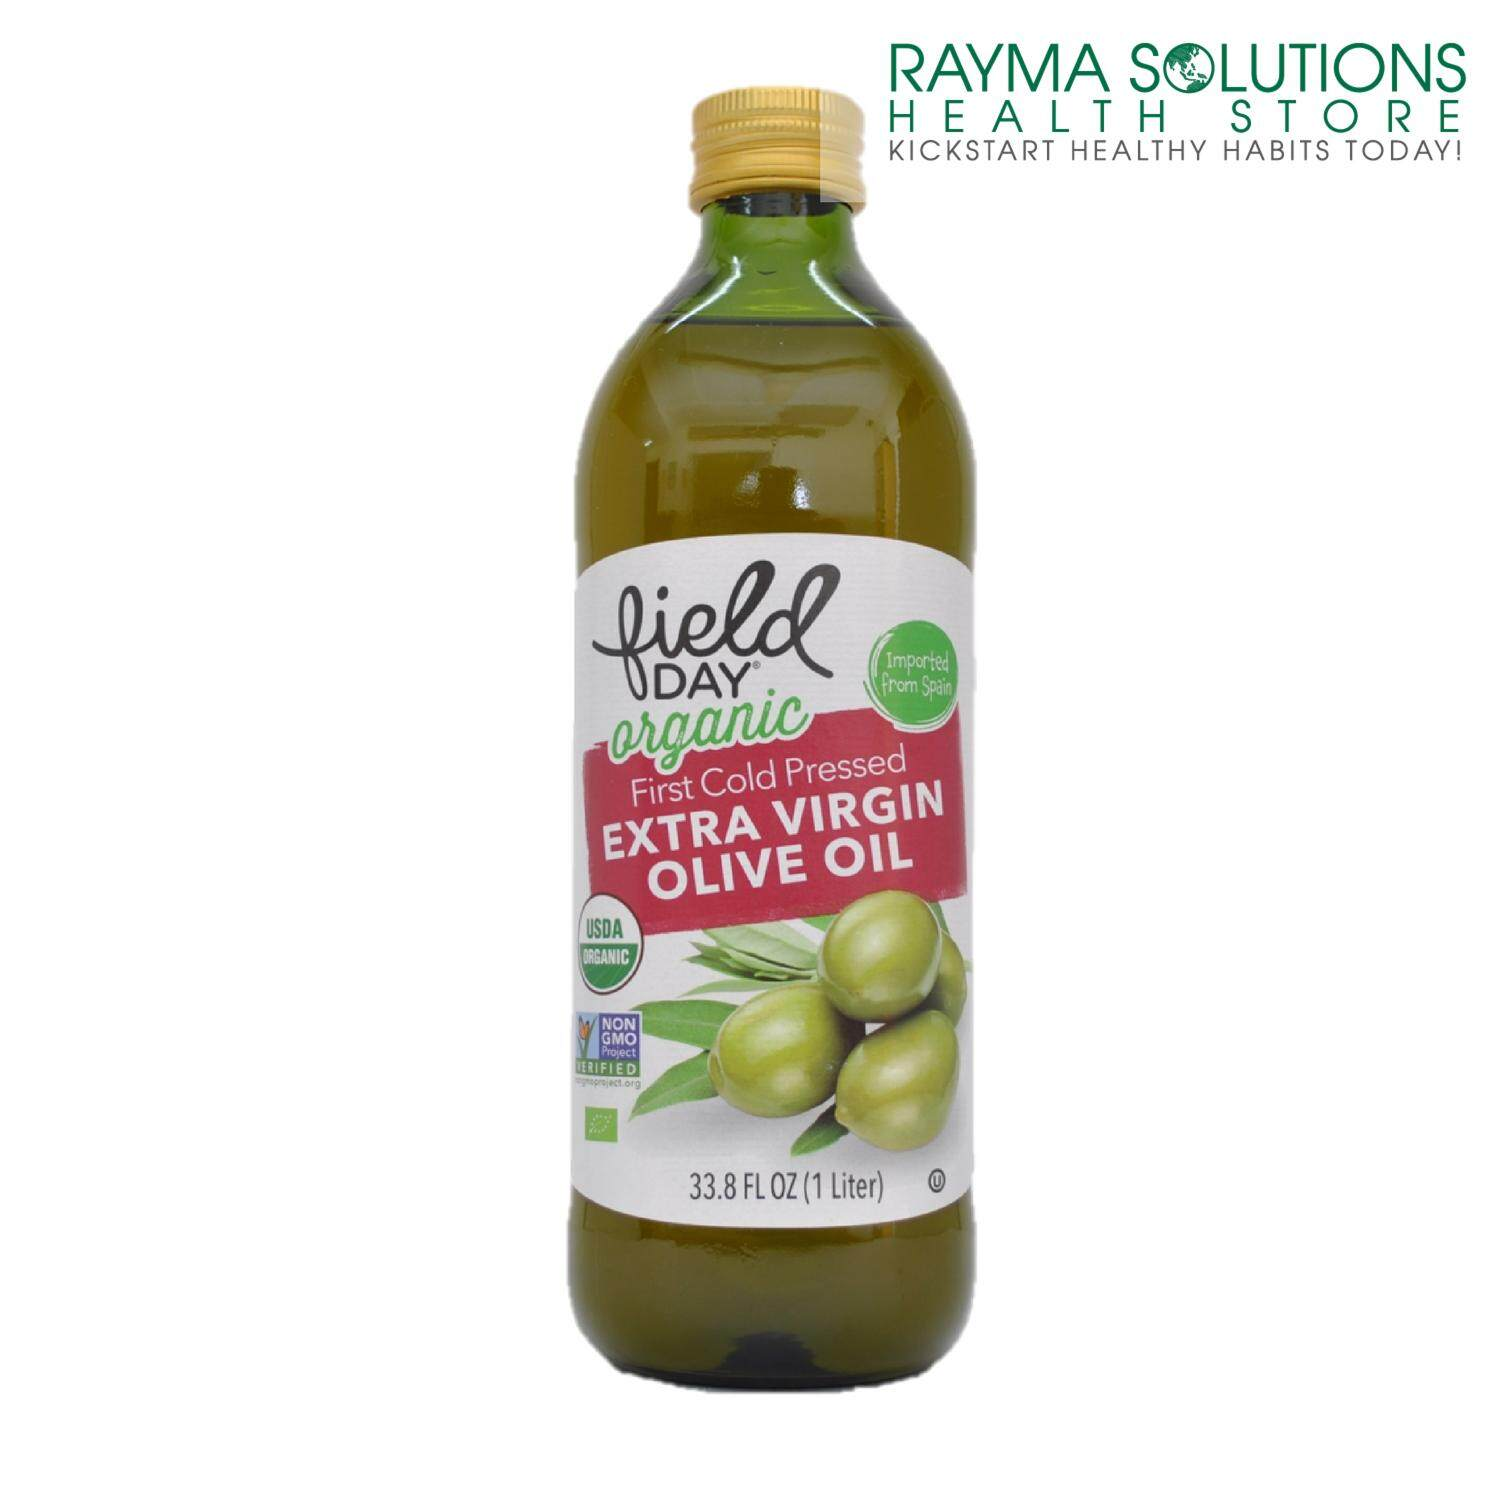 FIELD DAY ORGANIC First Cold Pressed Extra Virgin Olive Oil 1L